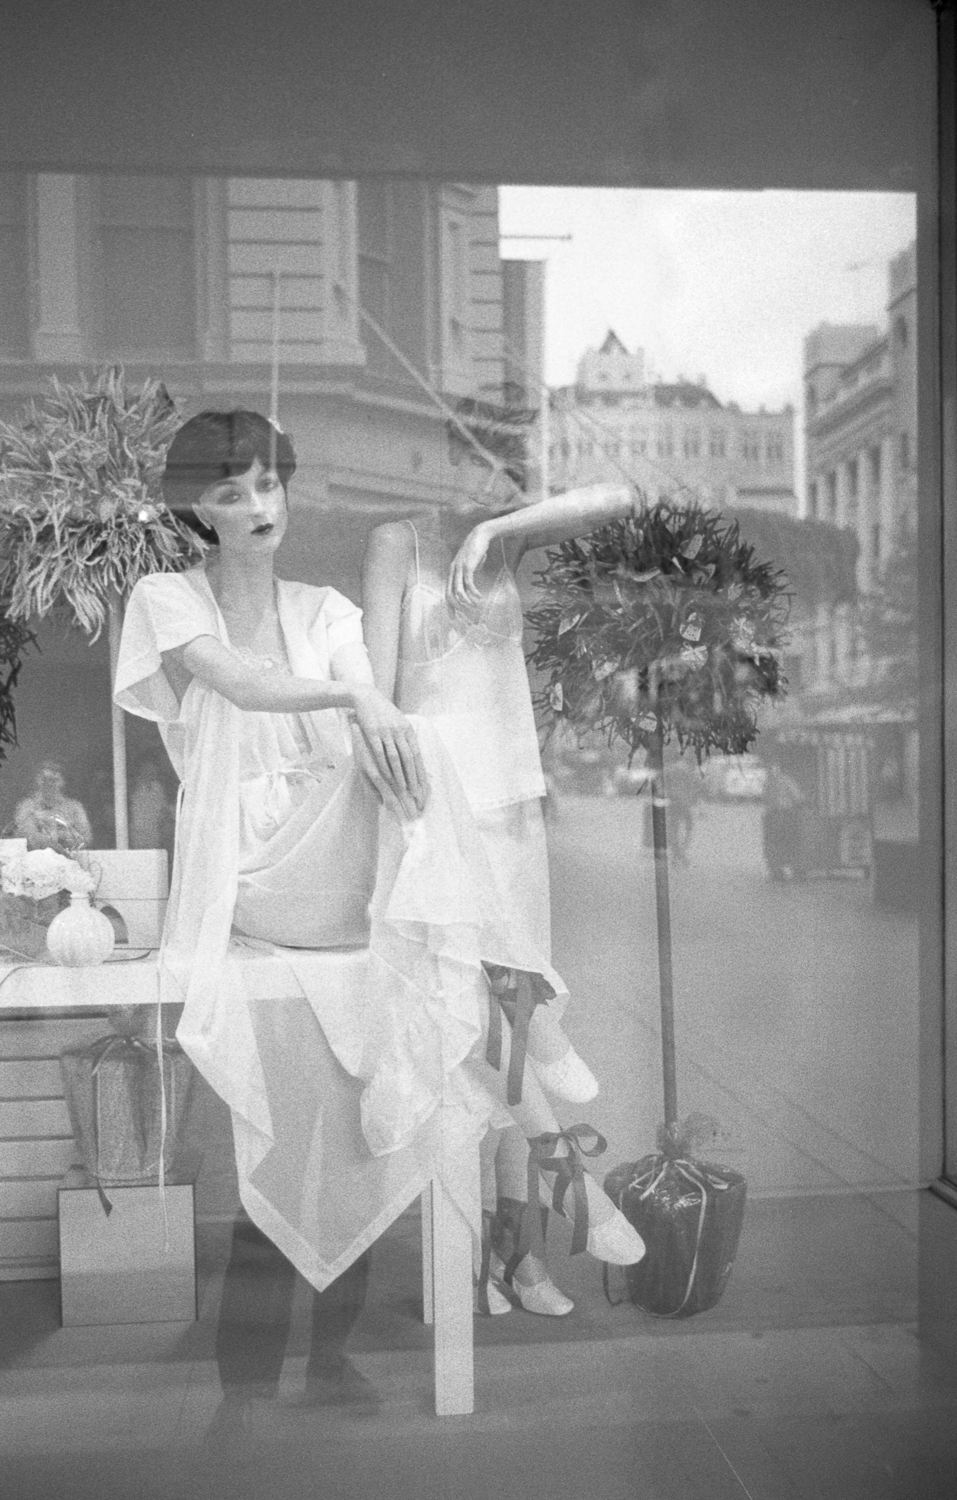 Mannequins, Rundle Mall